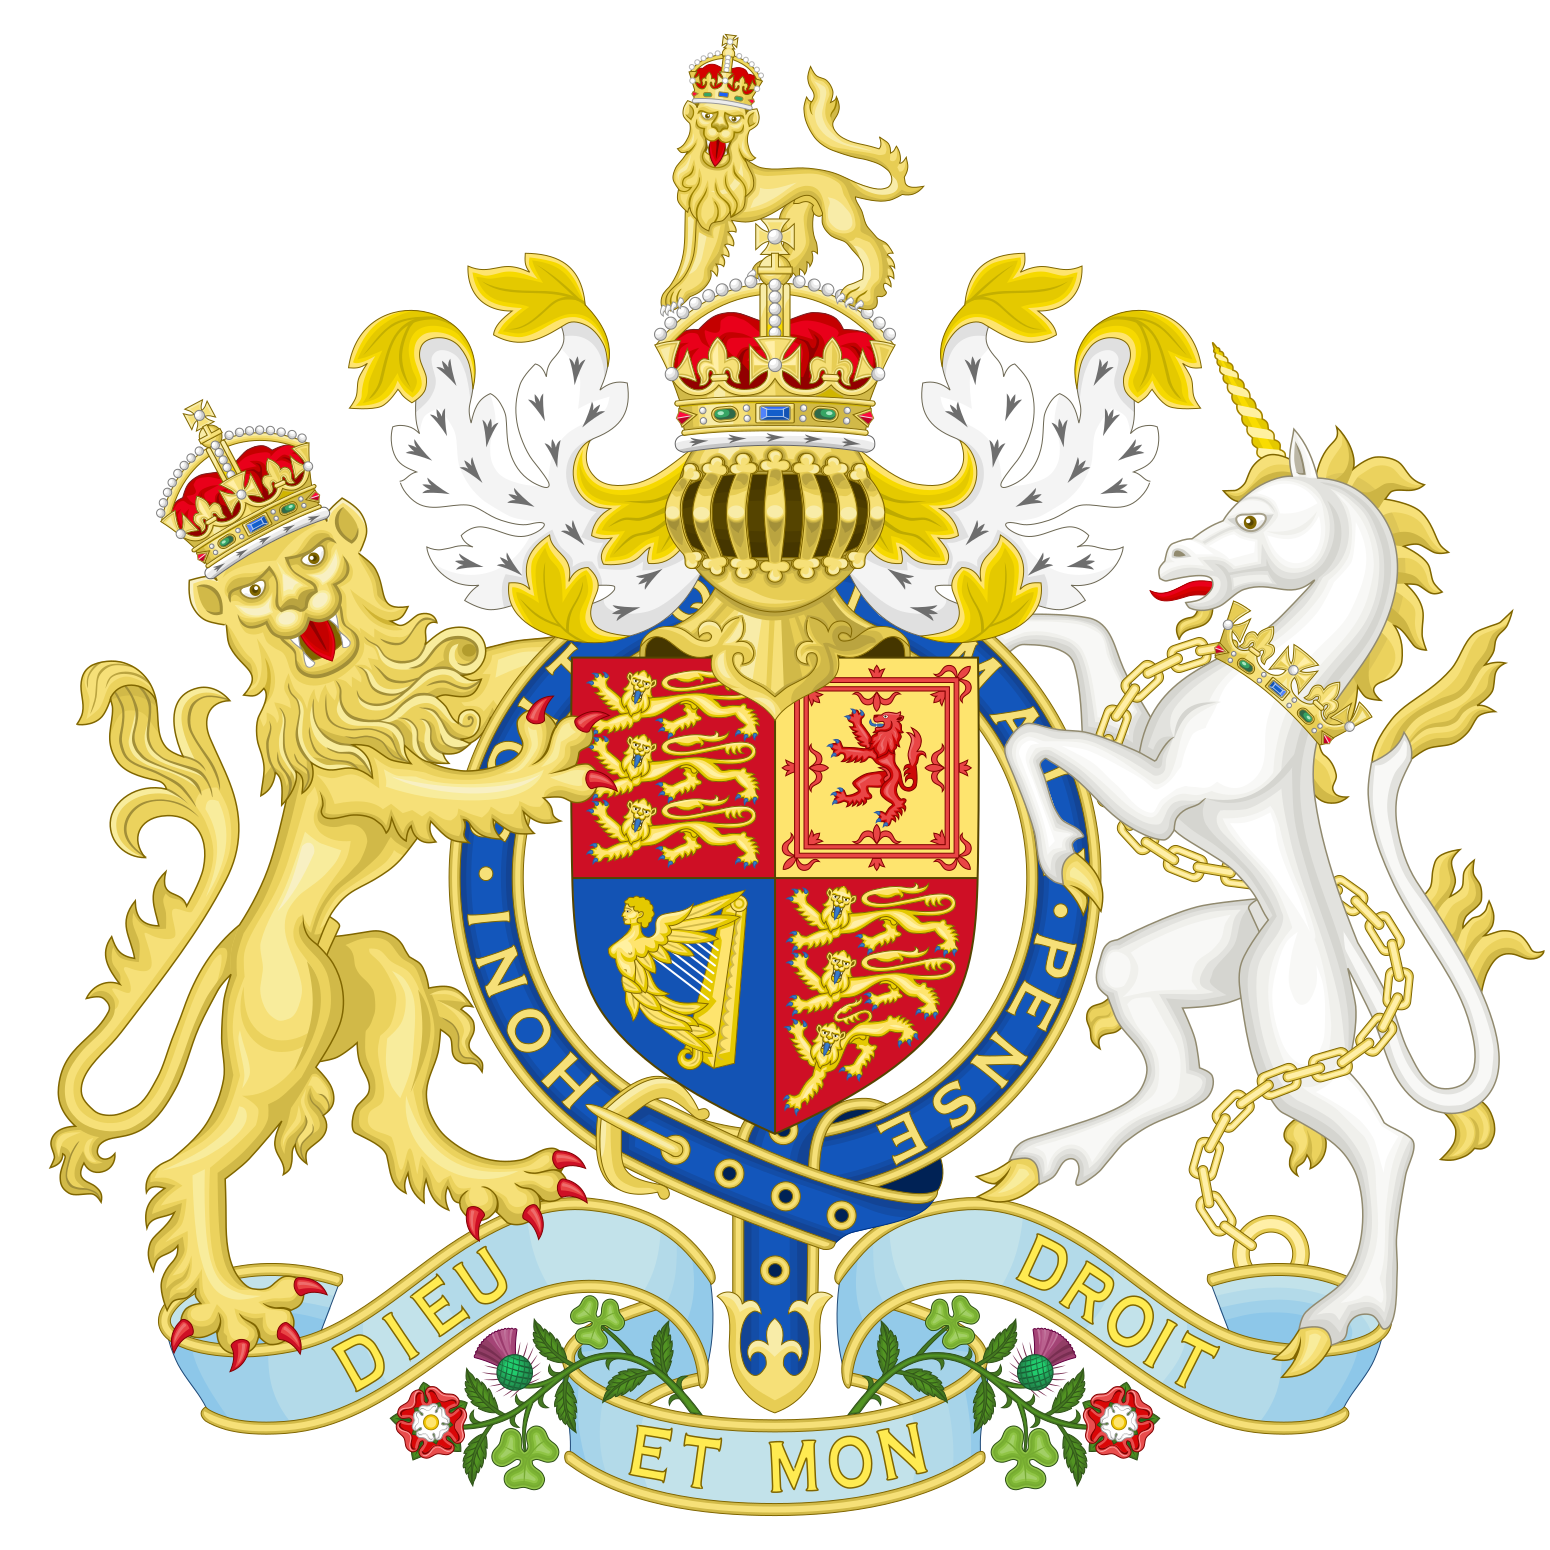 Coat of arms of the United Kingdom, 1837-1952